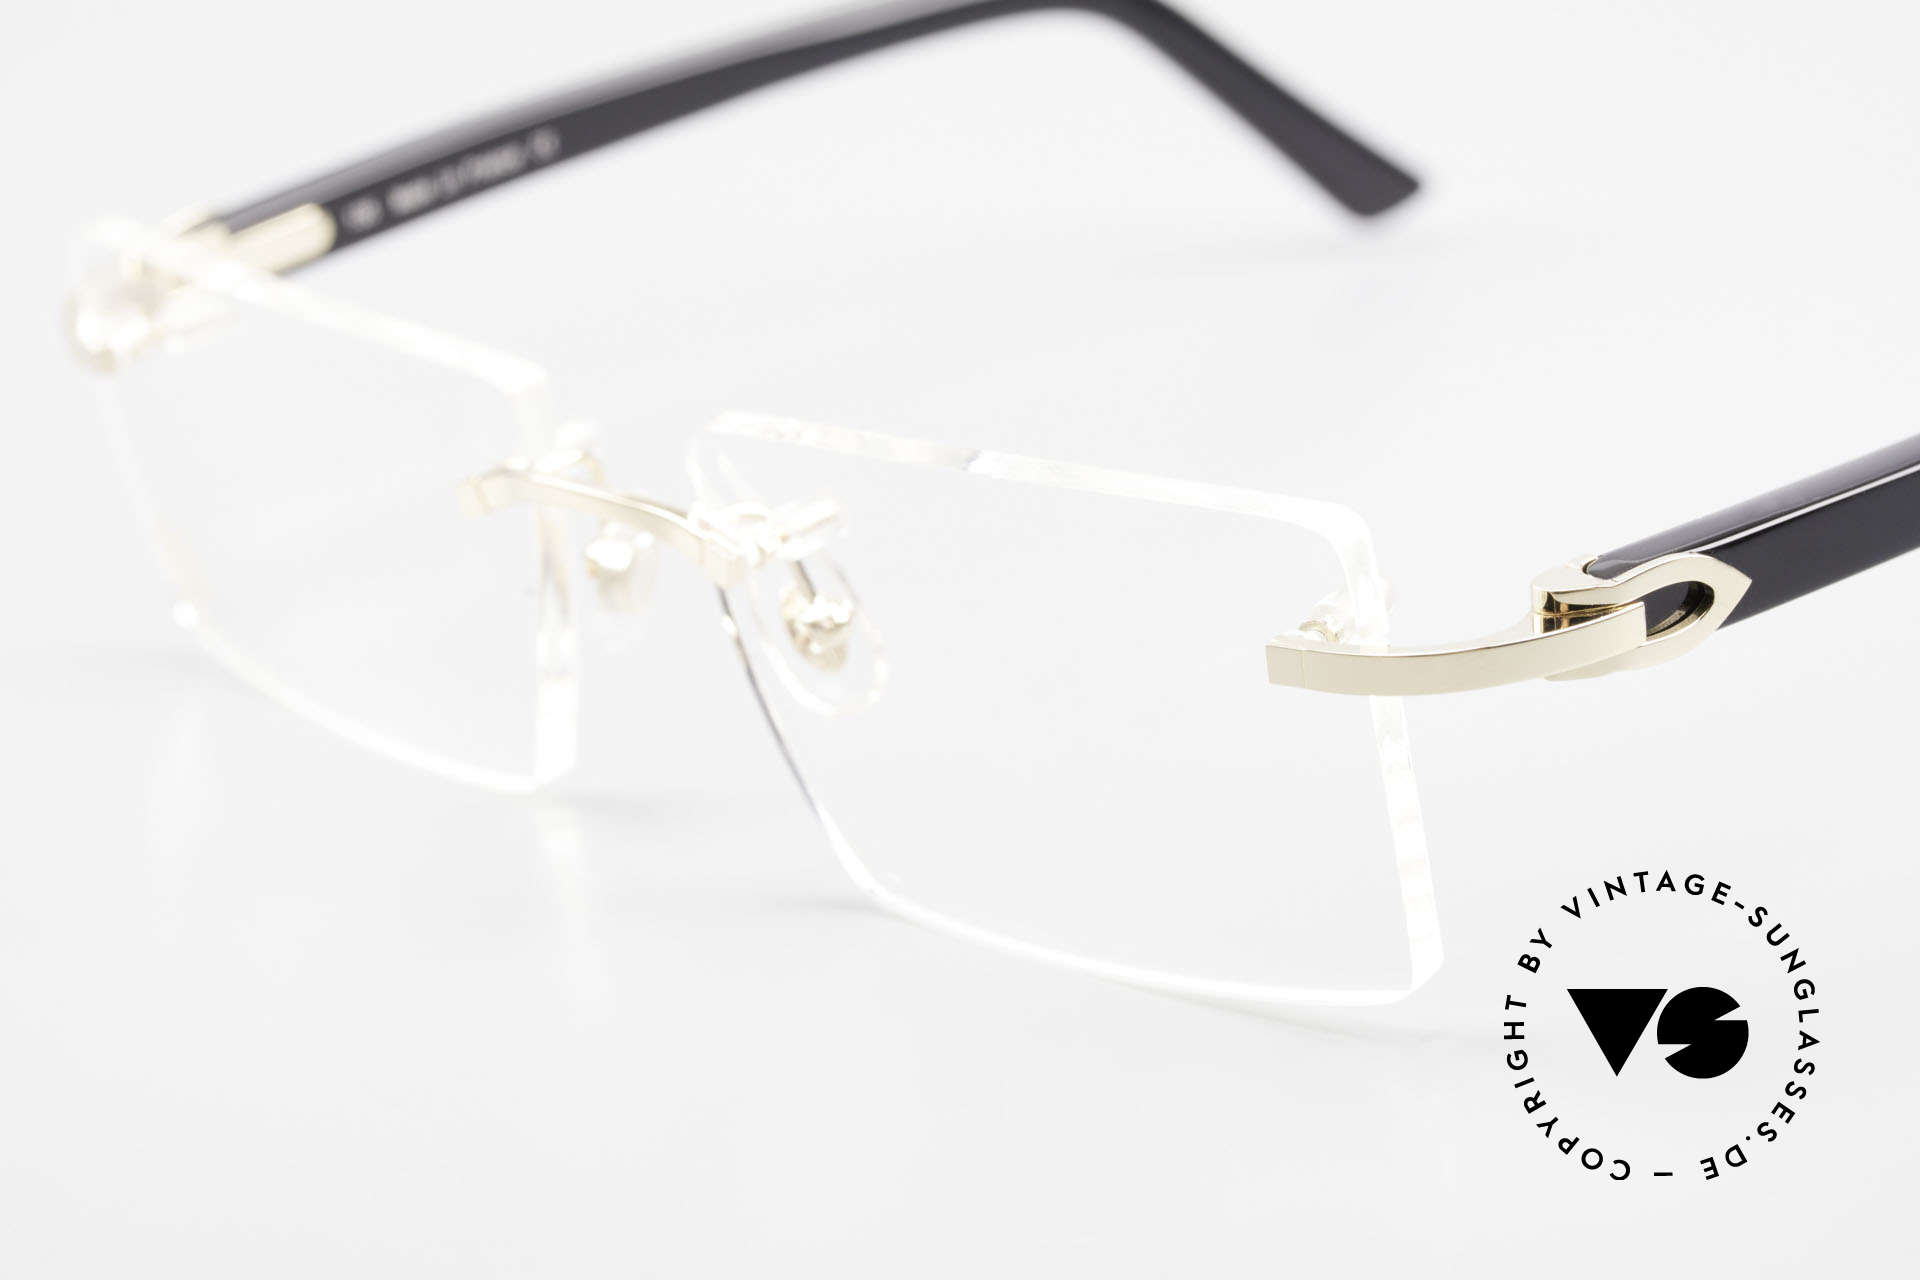 Cartier Canazei Rimless Luxury Frame Square, unworn luxury specs with original case and packing, Made for Men and Women